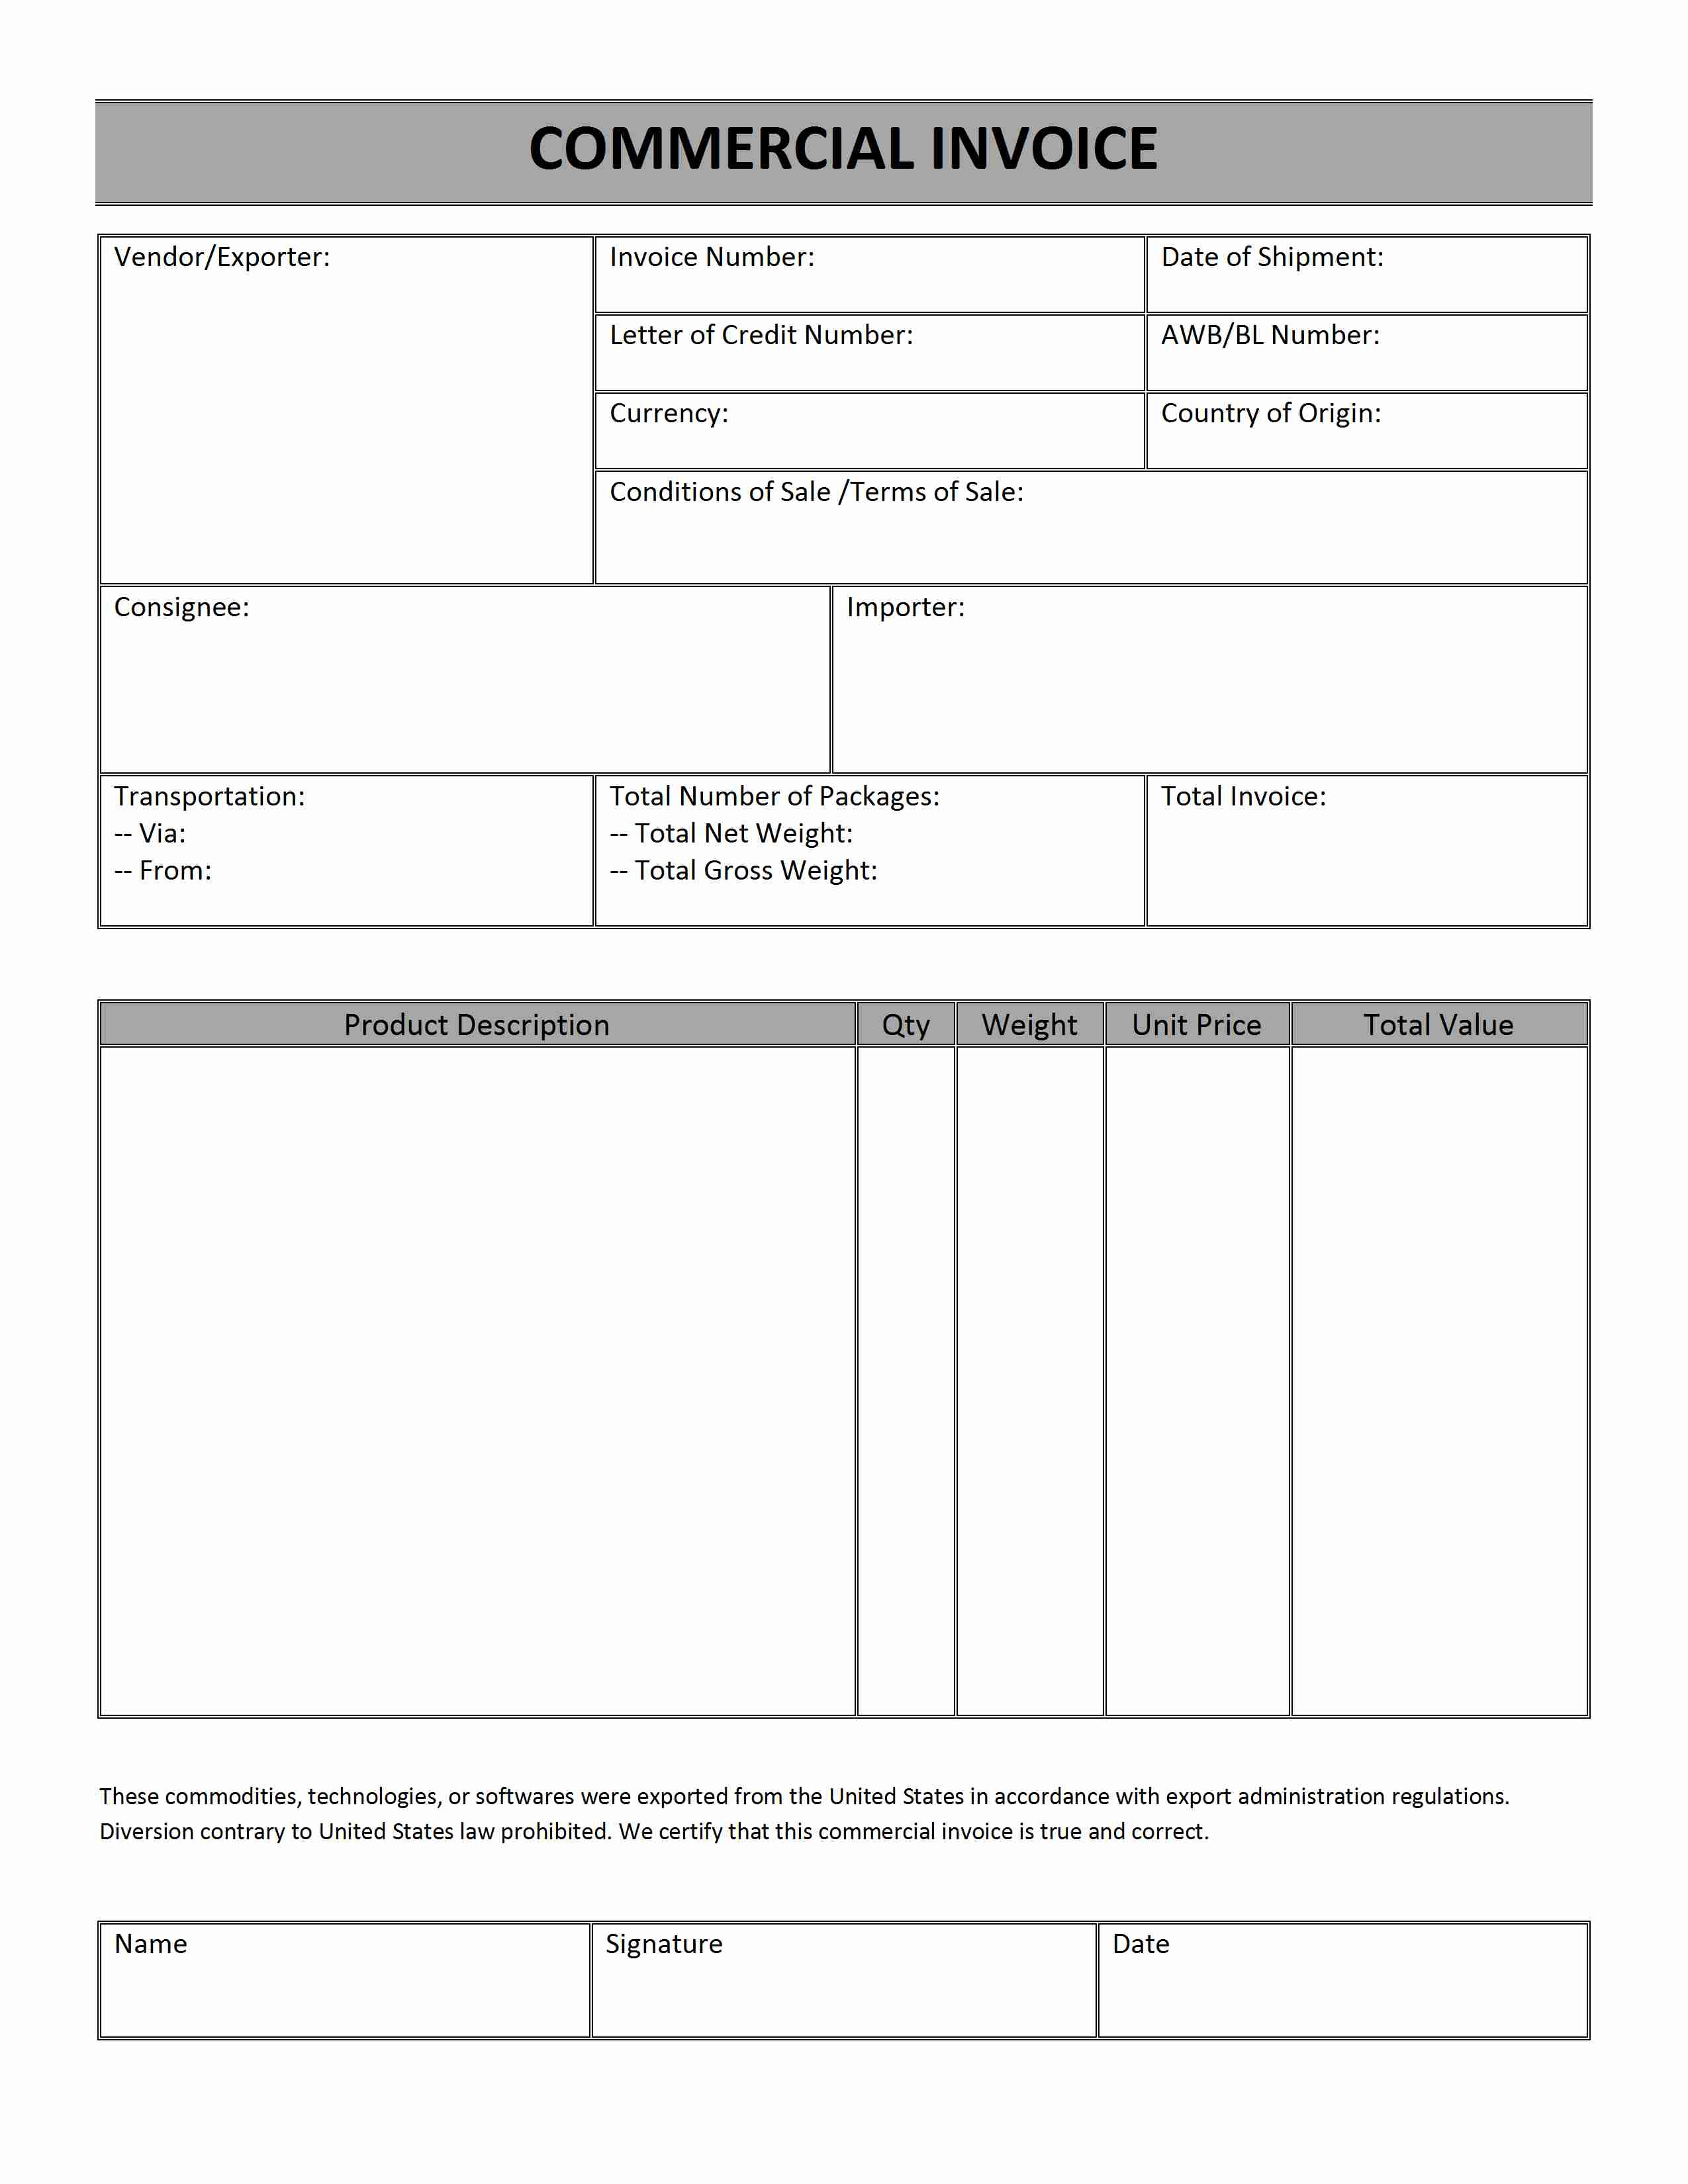 Darkfaderus  Unique Printable Sales Invoice Simple Invoice Form Free Invoice  With Excellent Printable Receipt Free  Free Printable Raffle Tickets  Receipt   Printable With Divine How To Create An Invoice In Quickbooks Also Vertex Invoice Template In Addition Sample Invoice Freelance And Stripe Invoicing As Well As Billing Invoice Template Word Additionally Xero Delete Invoice From Happytomco With Darkfaderus  Excellent Printable Sales Invoice Simple Invoice Form Free Invoice  With Divine Printable Receipt Free  Free Printable Raffle Tickets  Receipt   Printable And Unique How To Create An Invoice In Quickbooks Also Vertex Invoice Template In Addition Sample Invoice Freelance From Happytomco